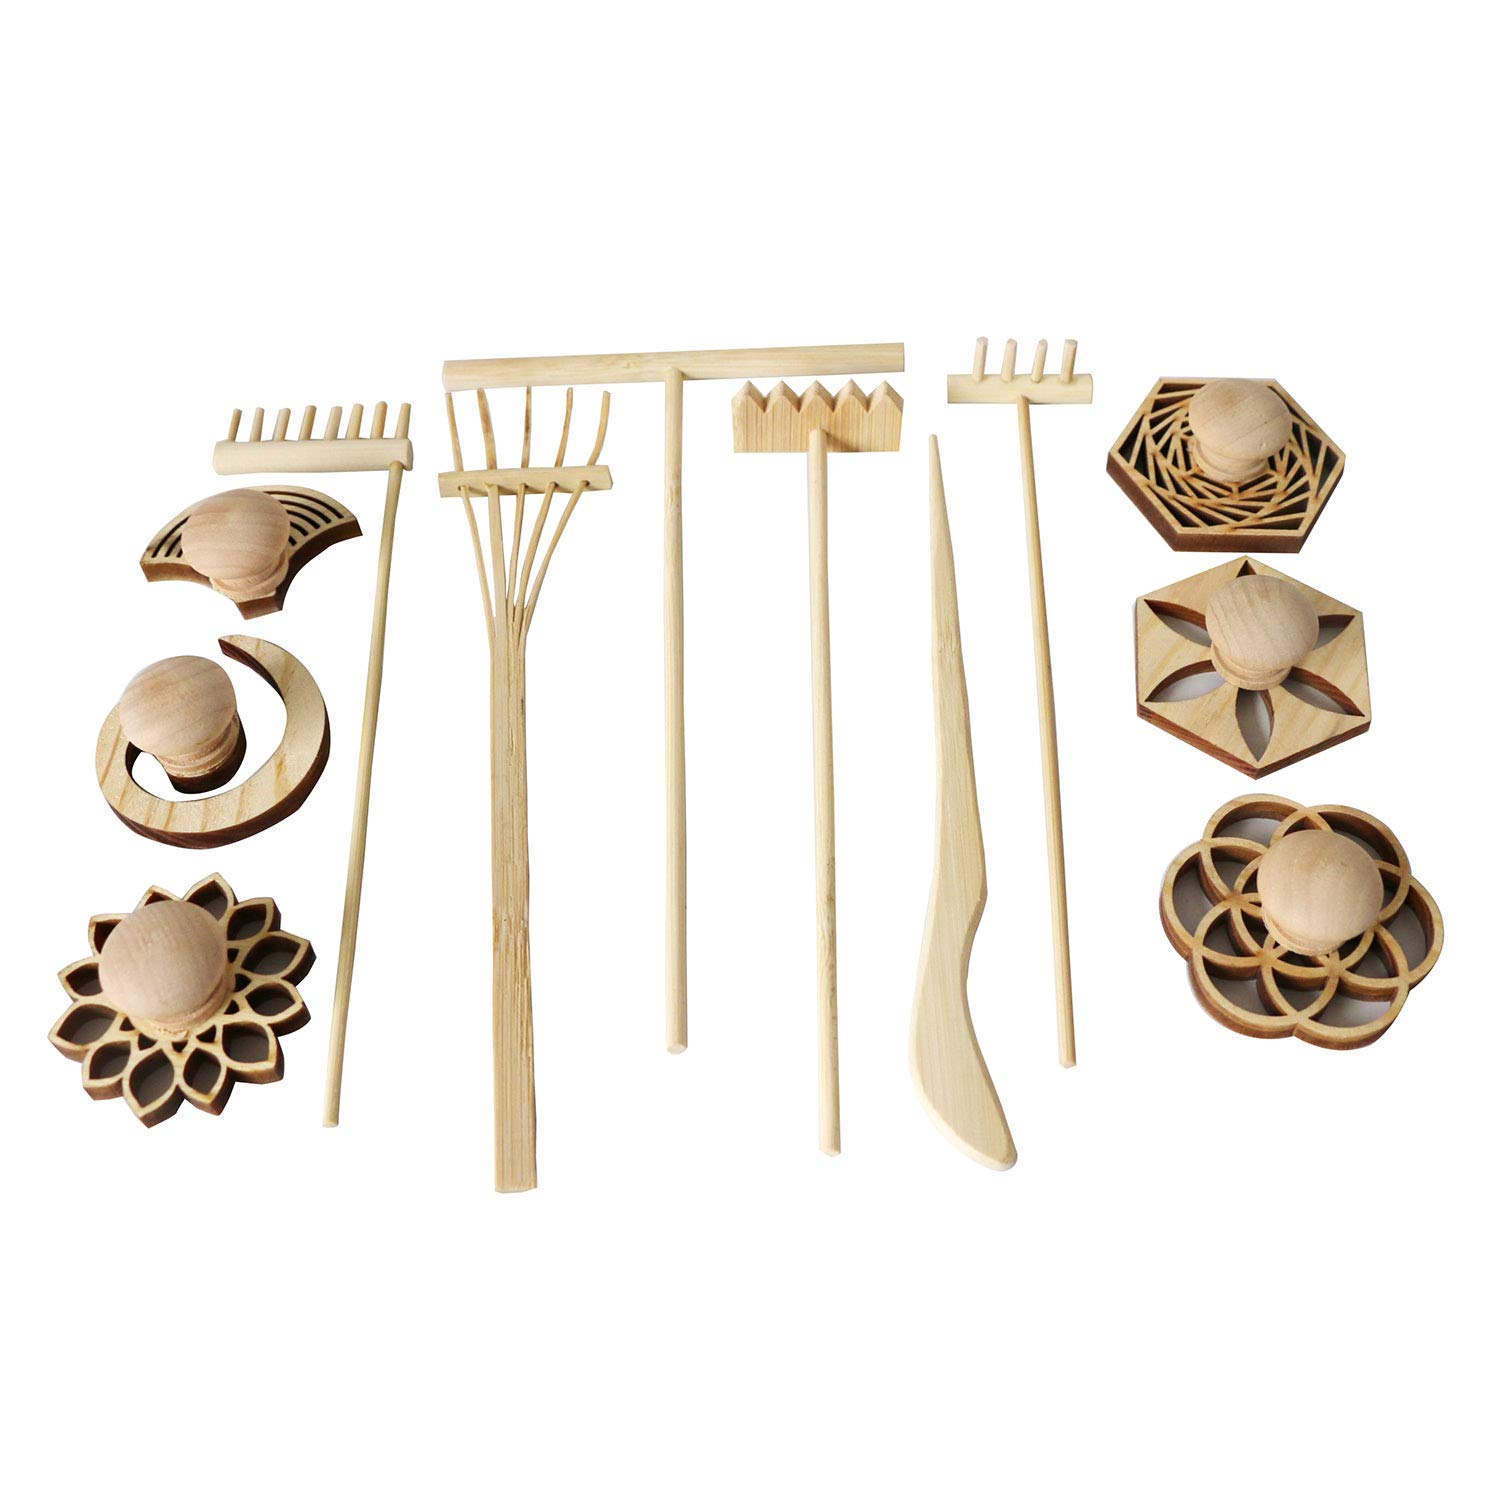 BangBangDa Mini Zen Garden Accessories - Tabletop Zen Garden Tools - Zen Garden Kit Rakes and Zen Stamp for Office Mini Zen Garden Set of 12